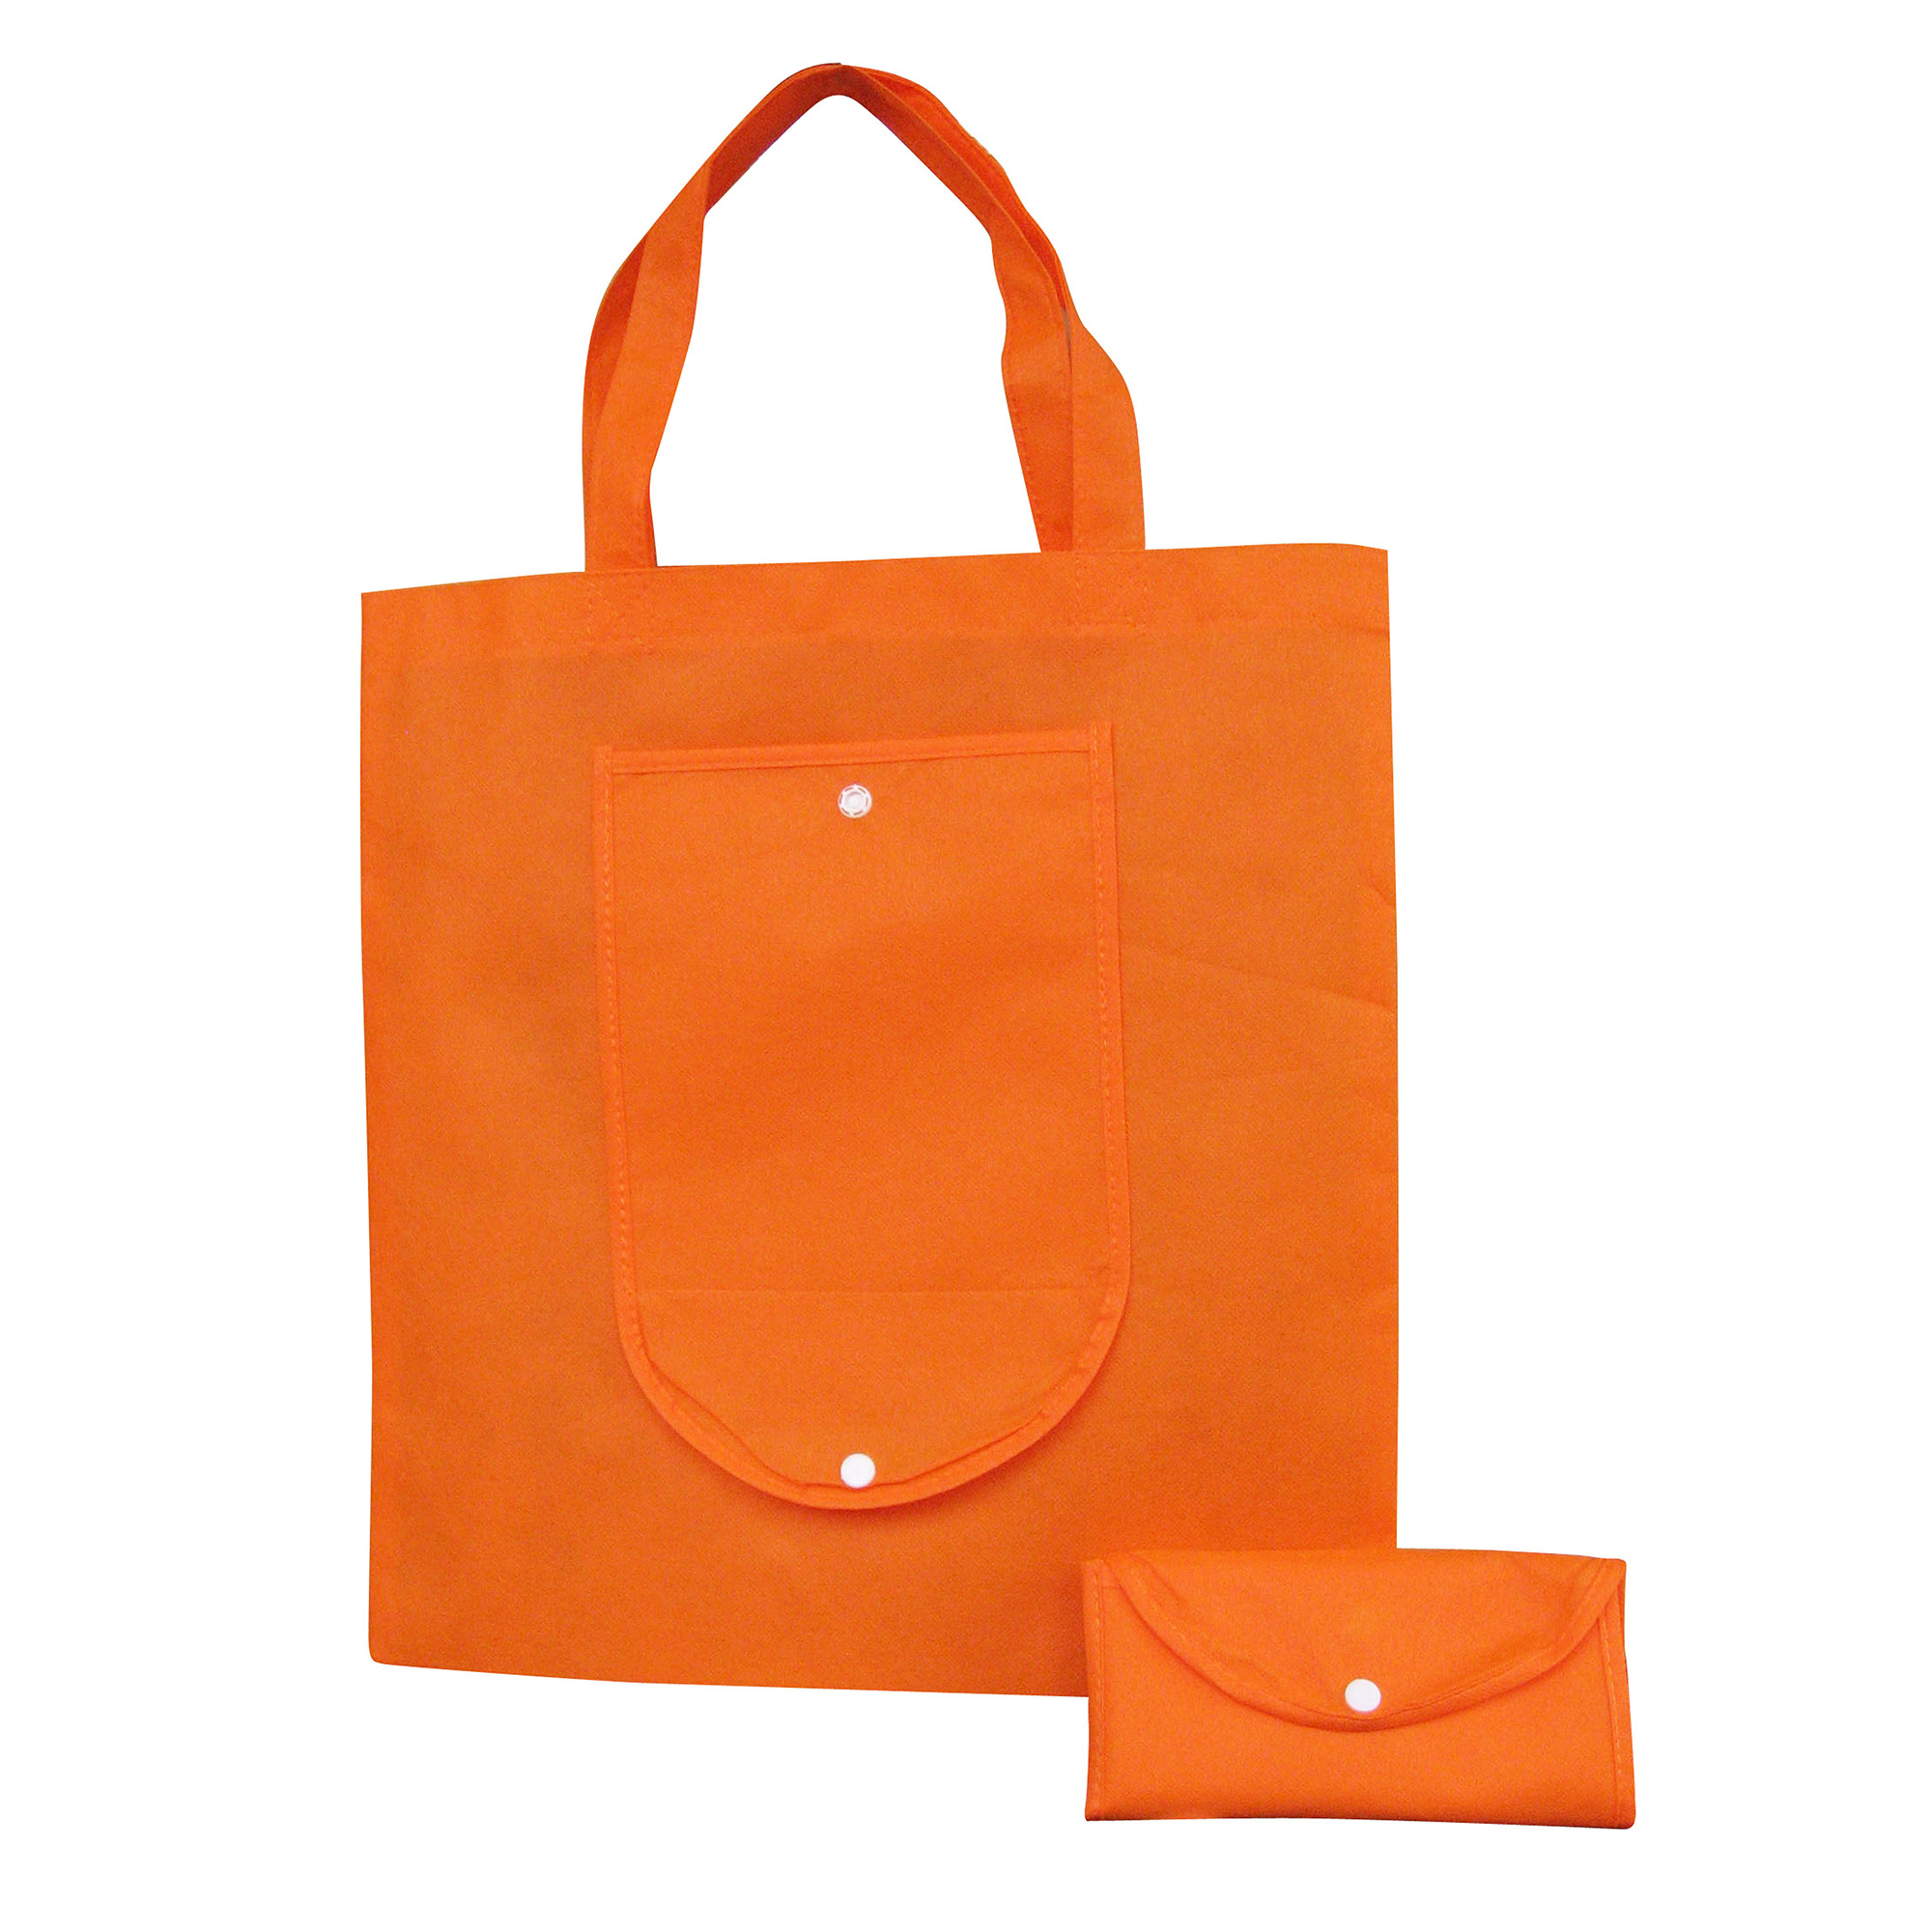 NON WOVEN FOLDABLE SHOPPING BAG - 1 Colour Print, From $1 -